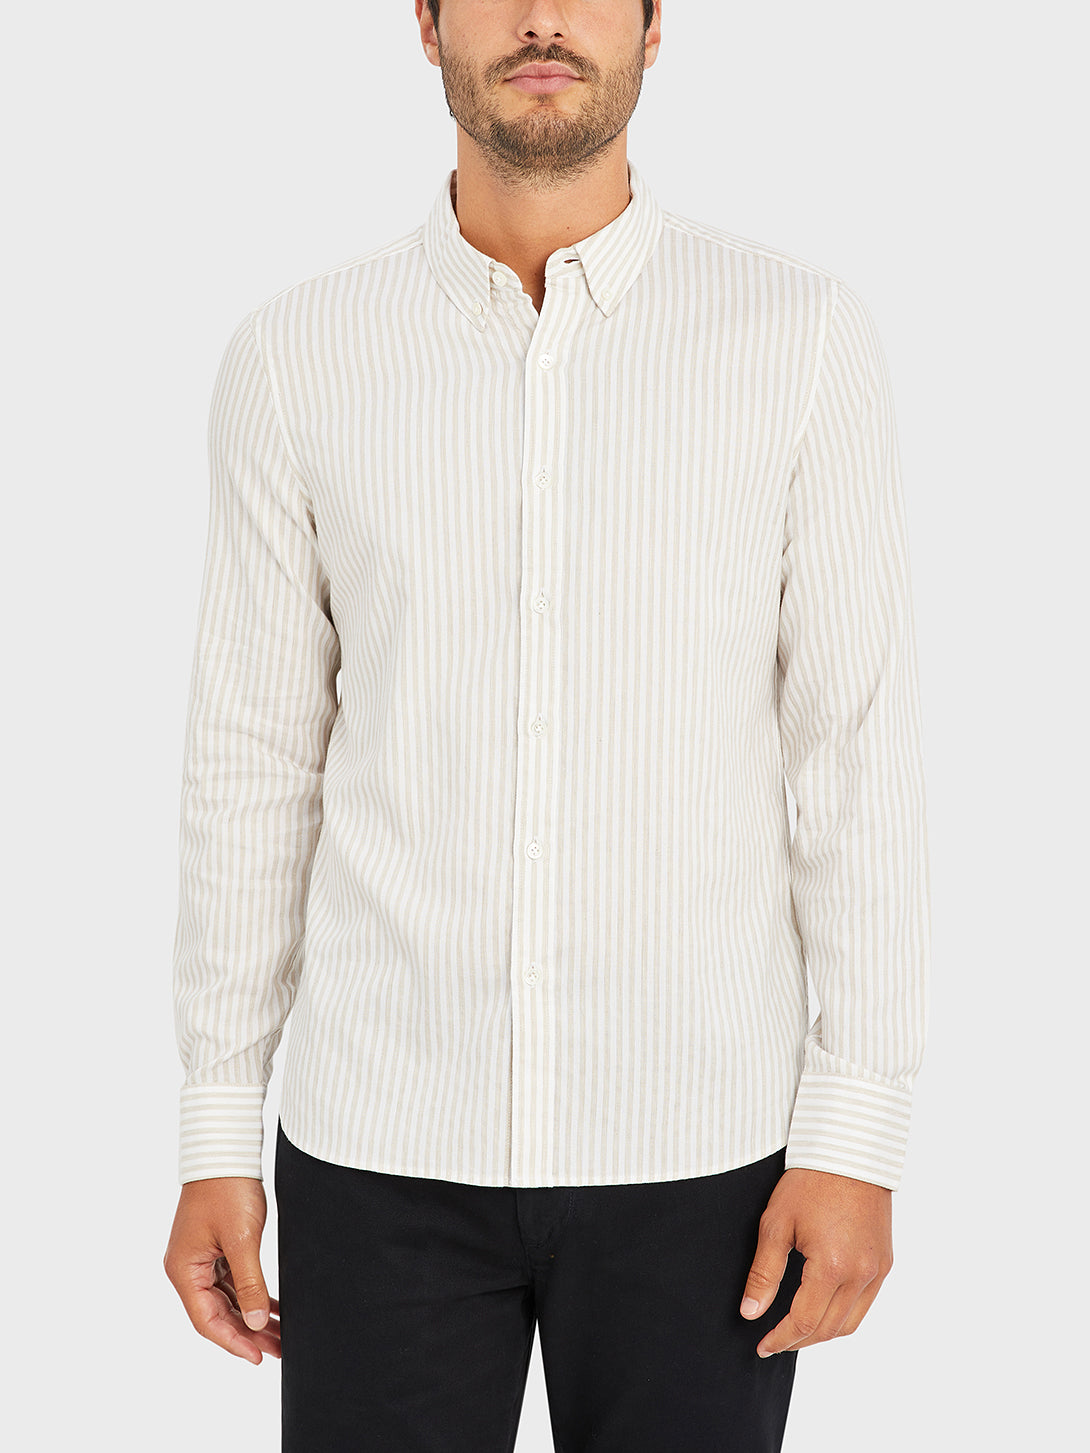 black friday deals FULTON STRIPED OXFORD SHIRT KHAKI STRIPE